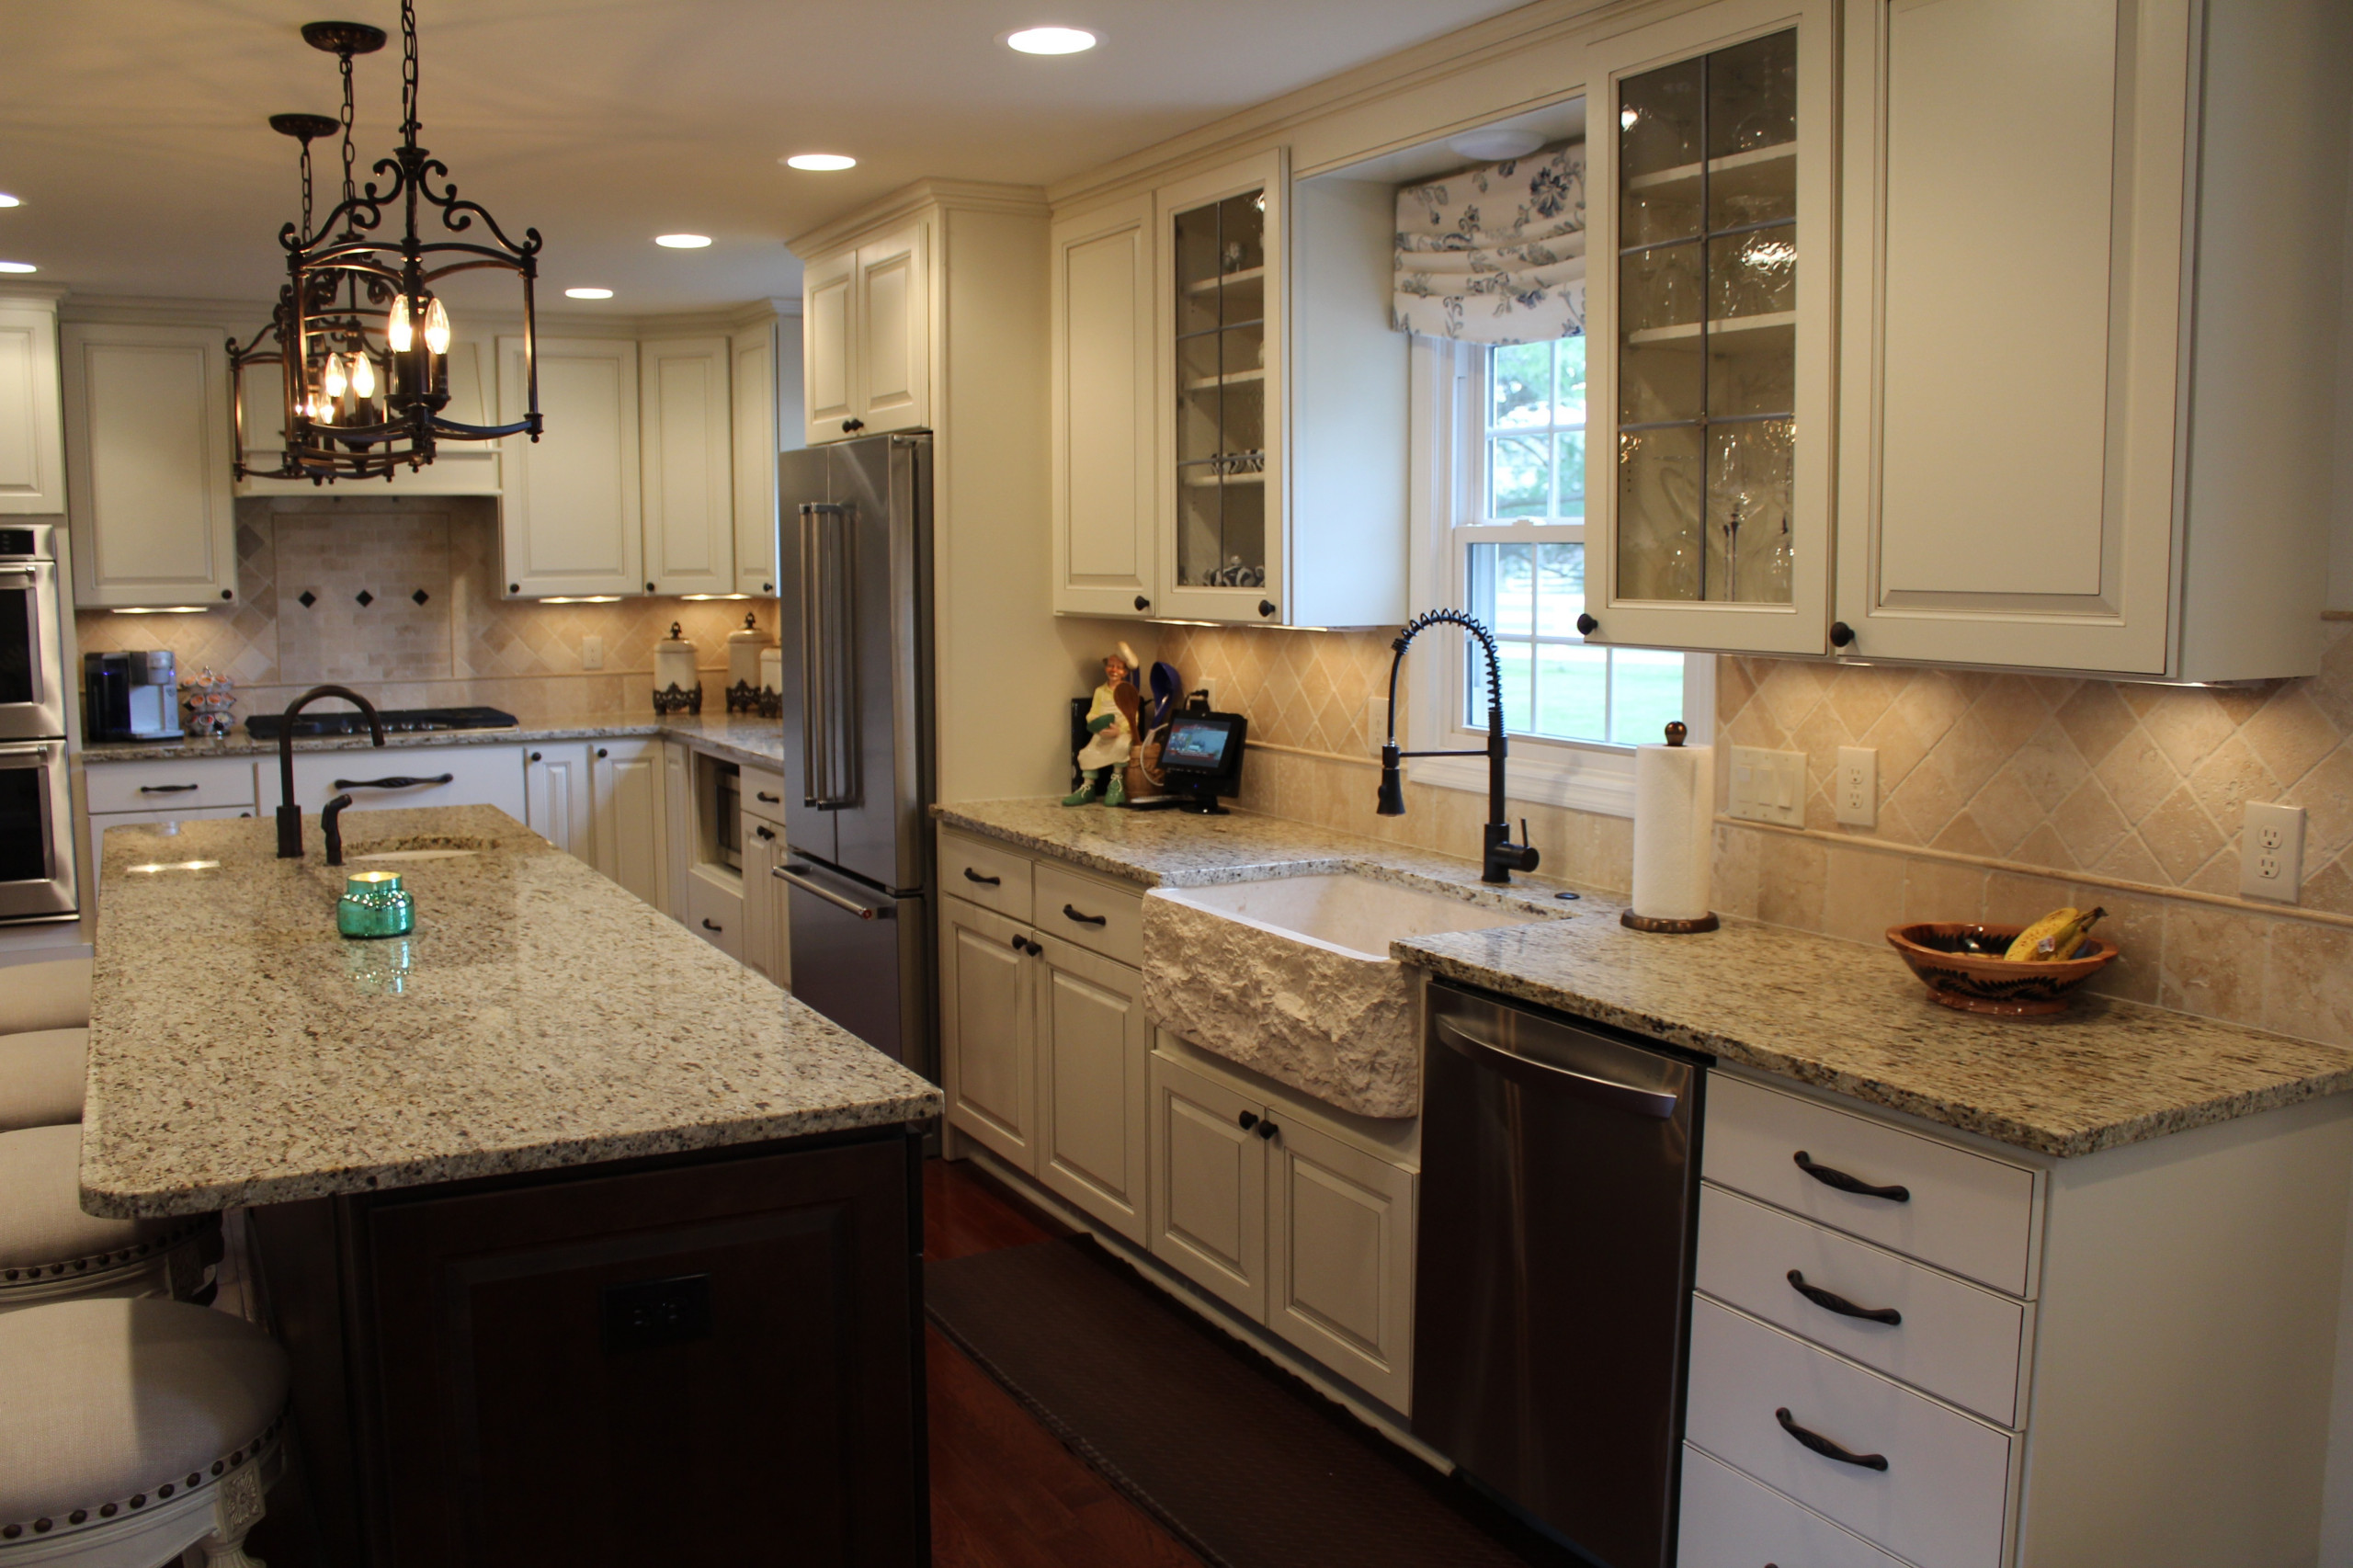 Westerville kitchen full remodel wall removal